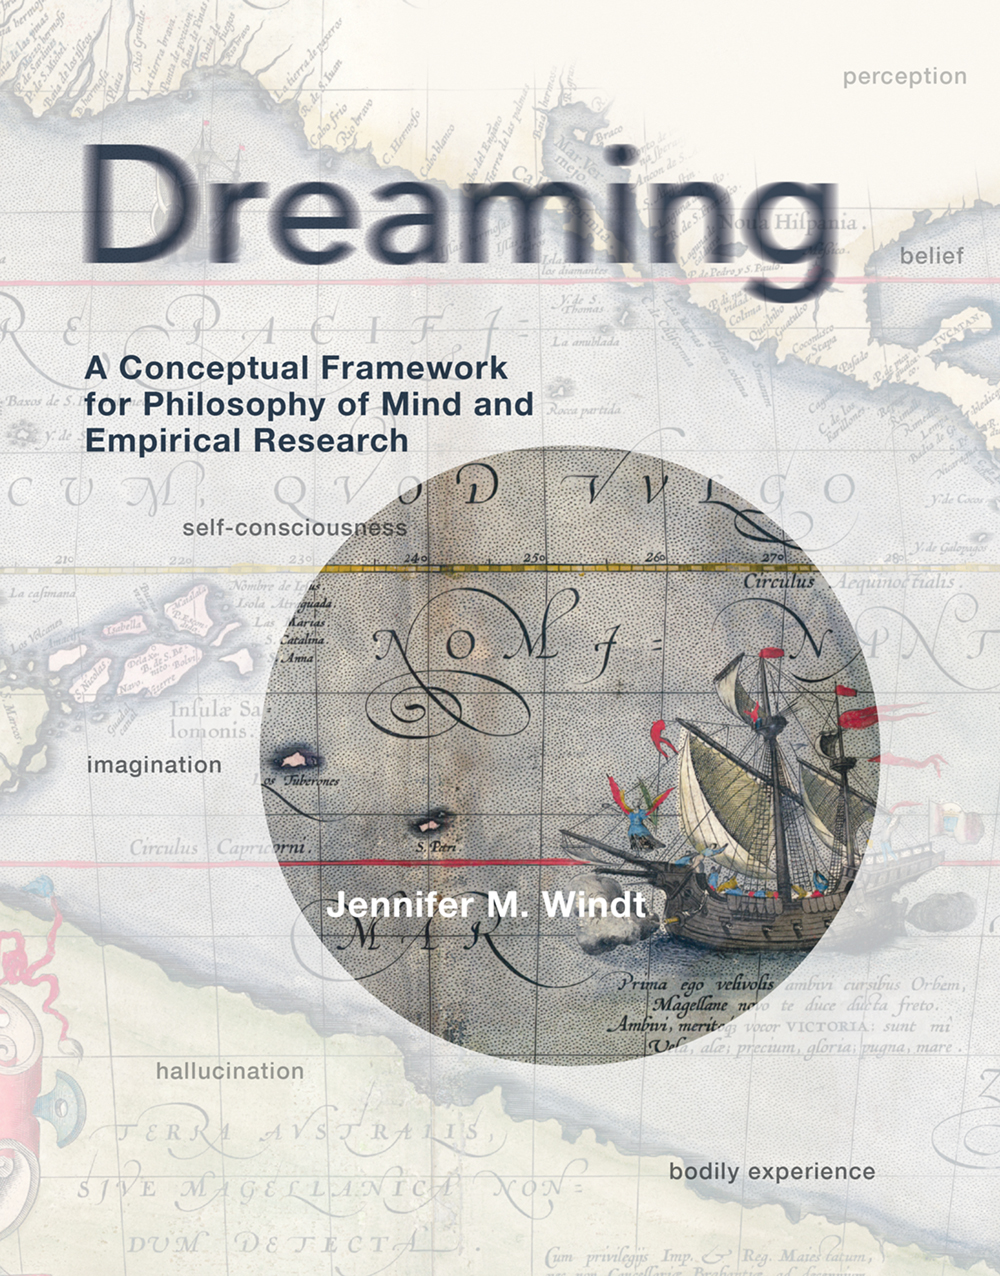 (Re-)mapping the concept of dreaming